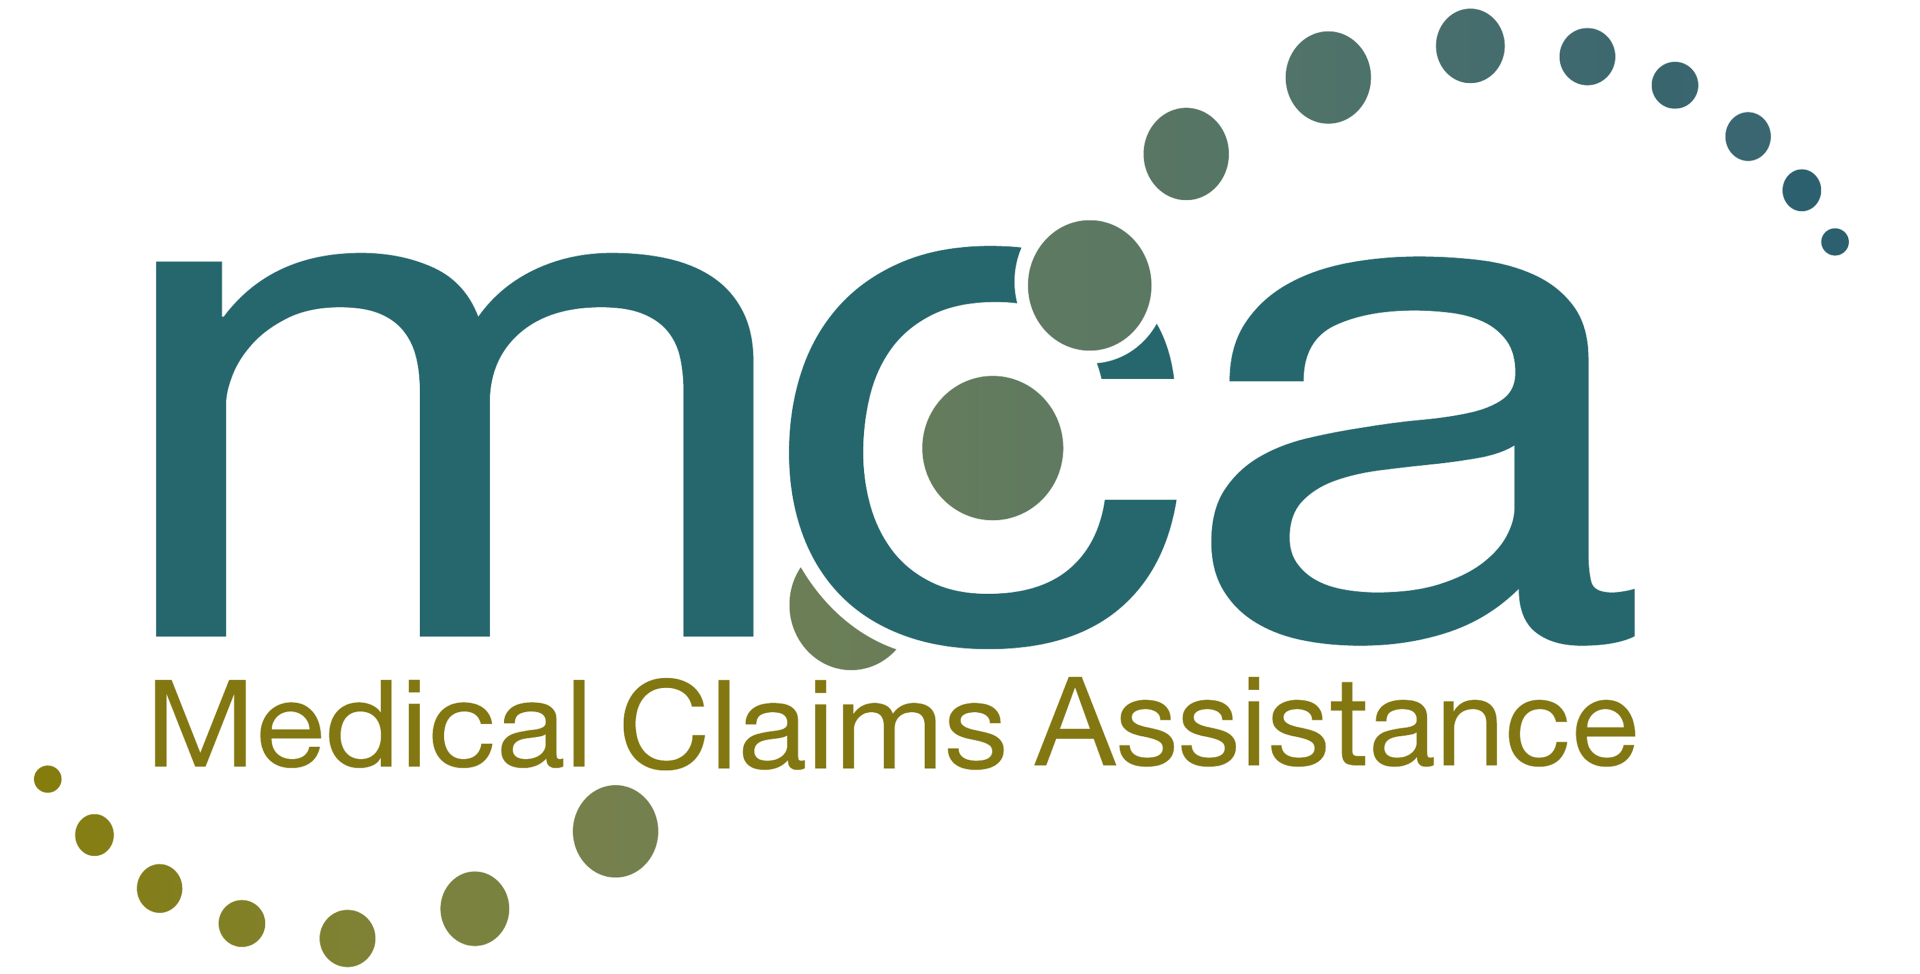 Medical Claims Assistance